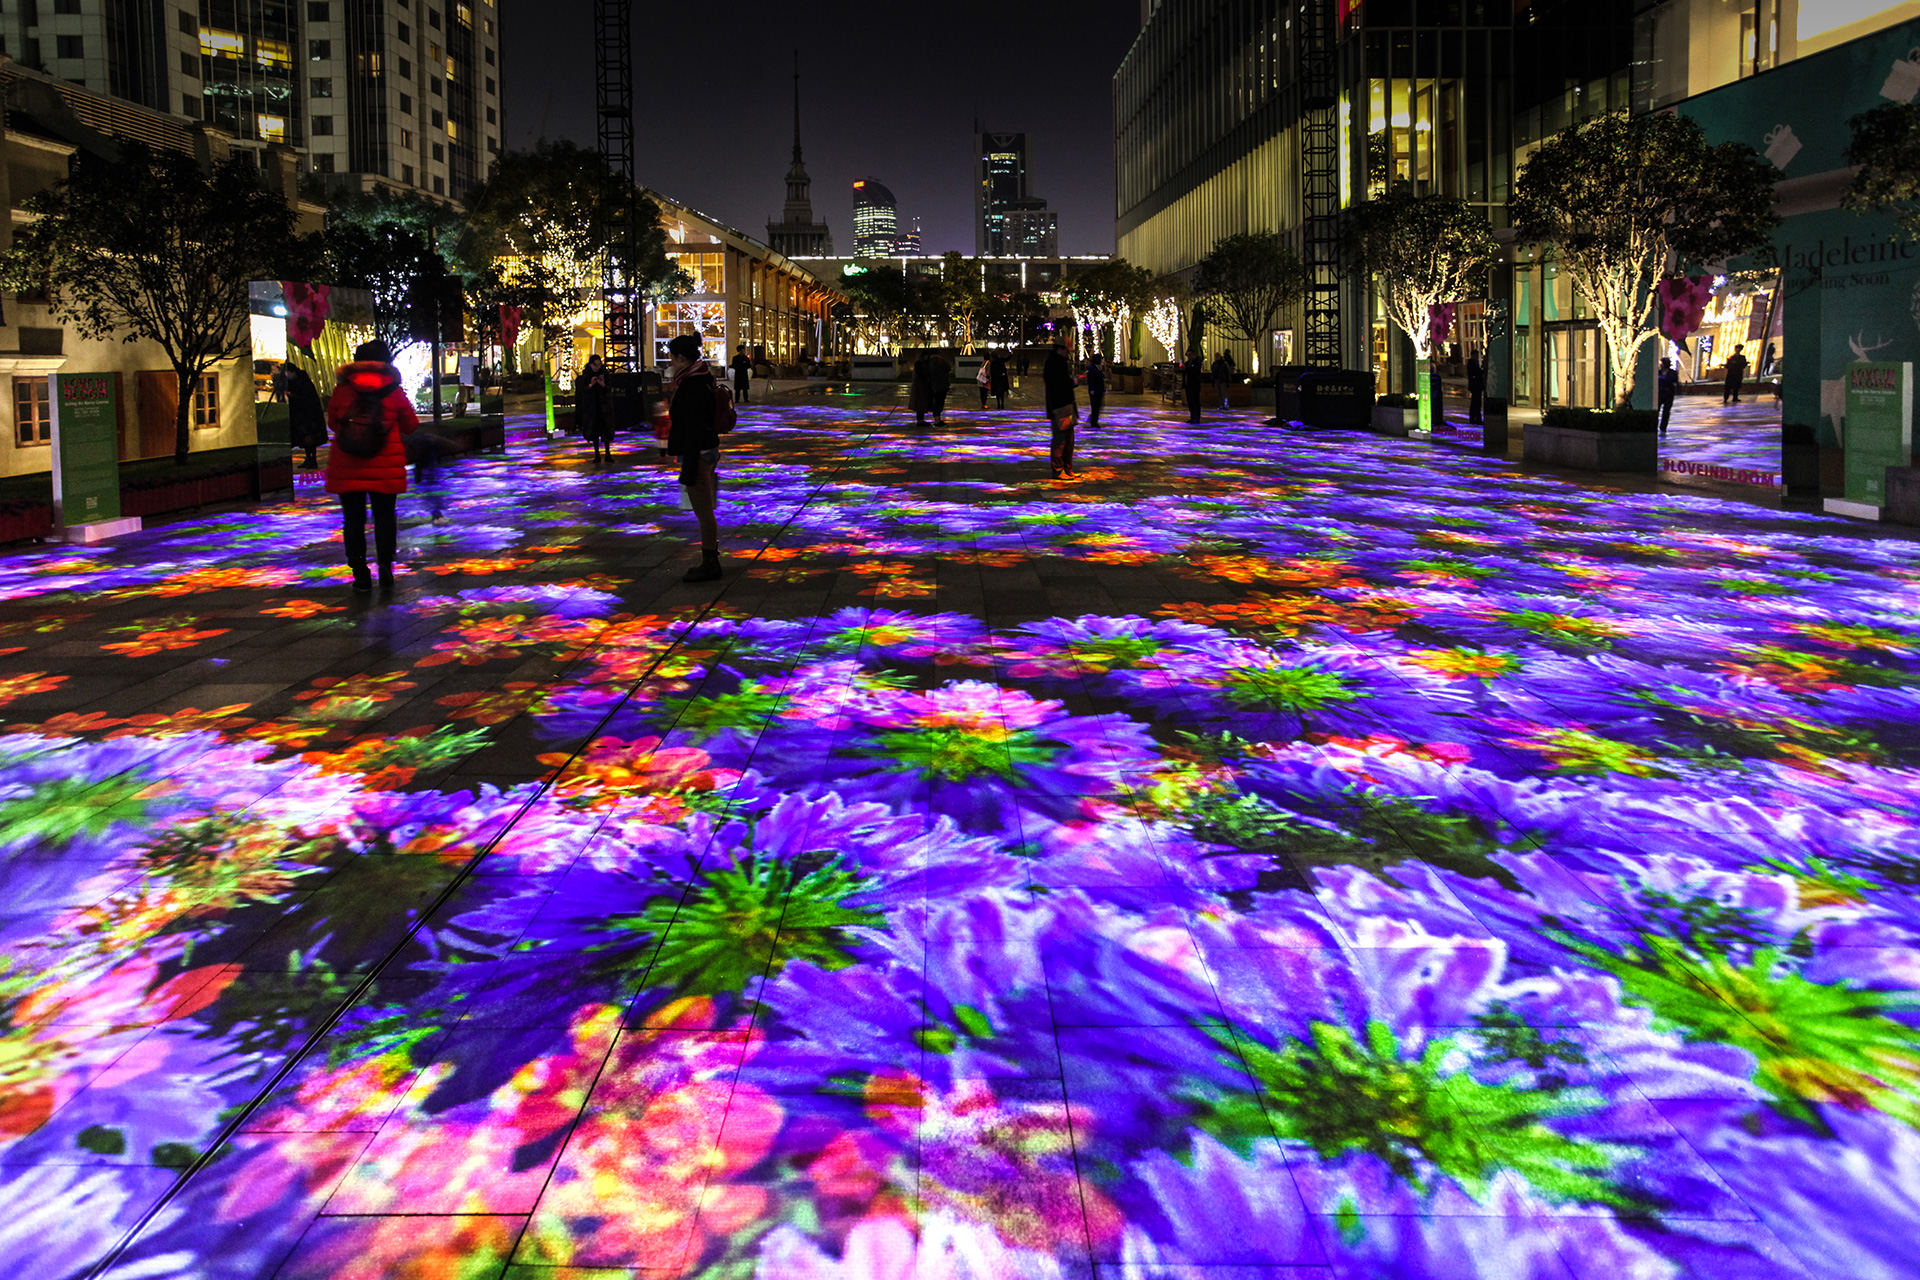 'Digital Water Lillies' (2017), a digital virtual-reality installation by Chevalier | Digital Water Lillies | Miguel Chevalier | STIRworld